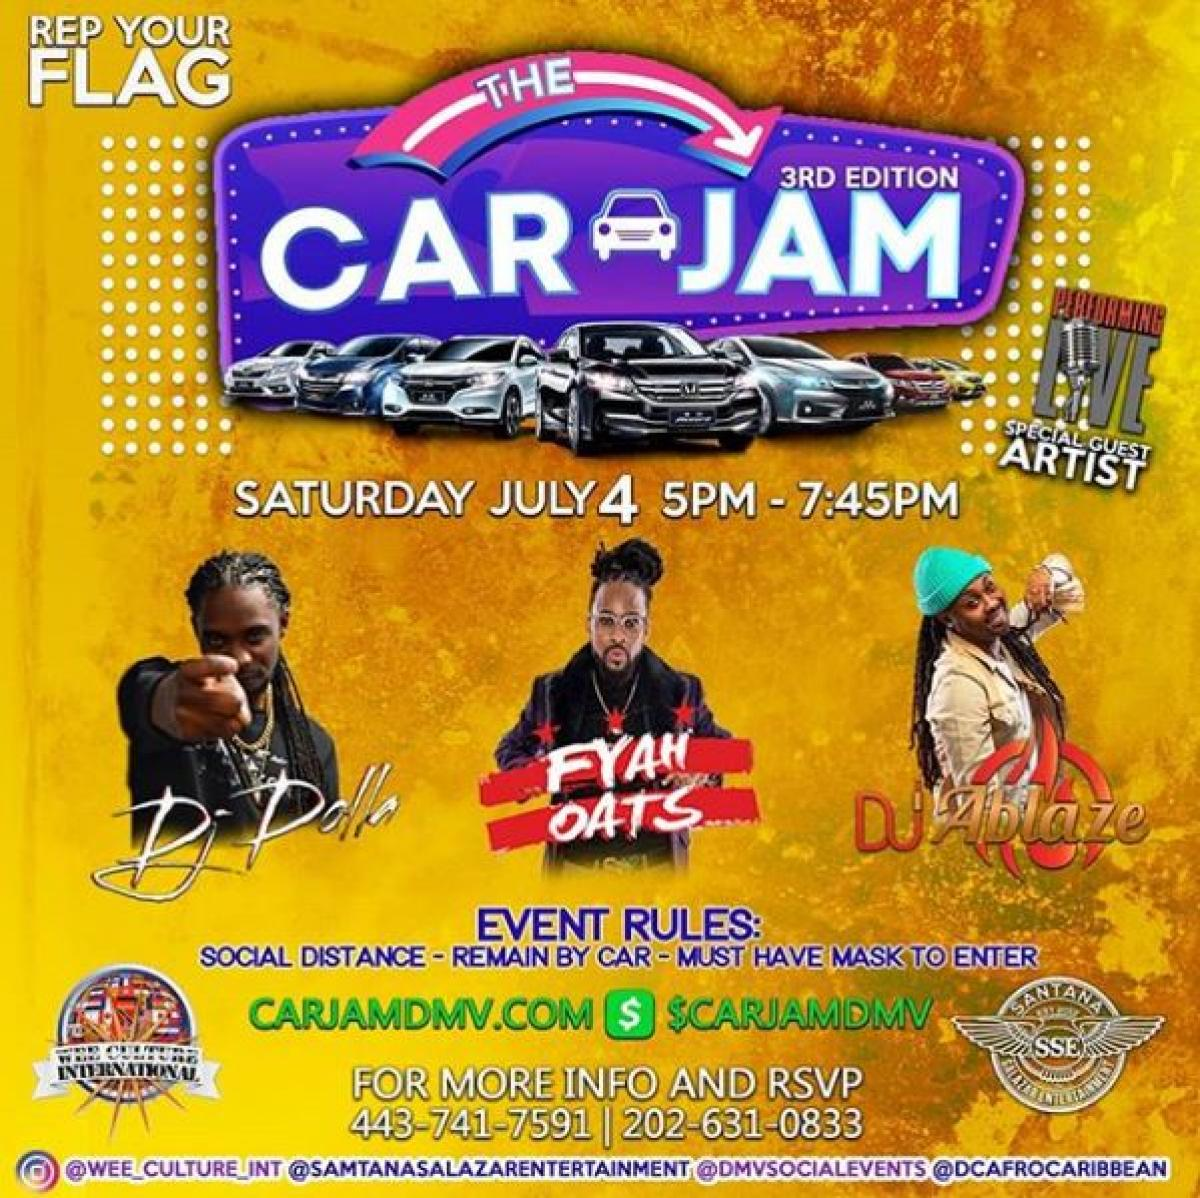 3rd Edition Car Jam  flyer or graphic.